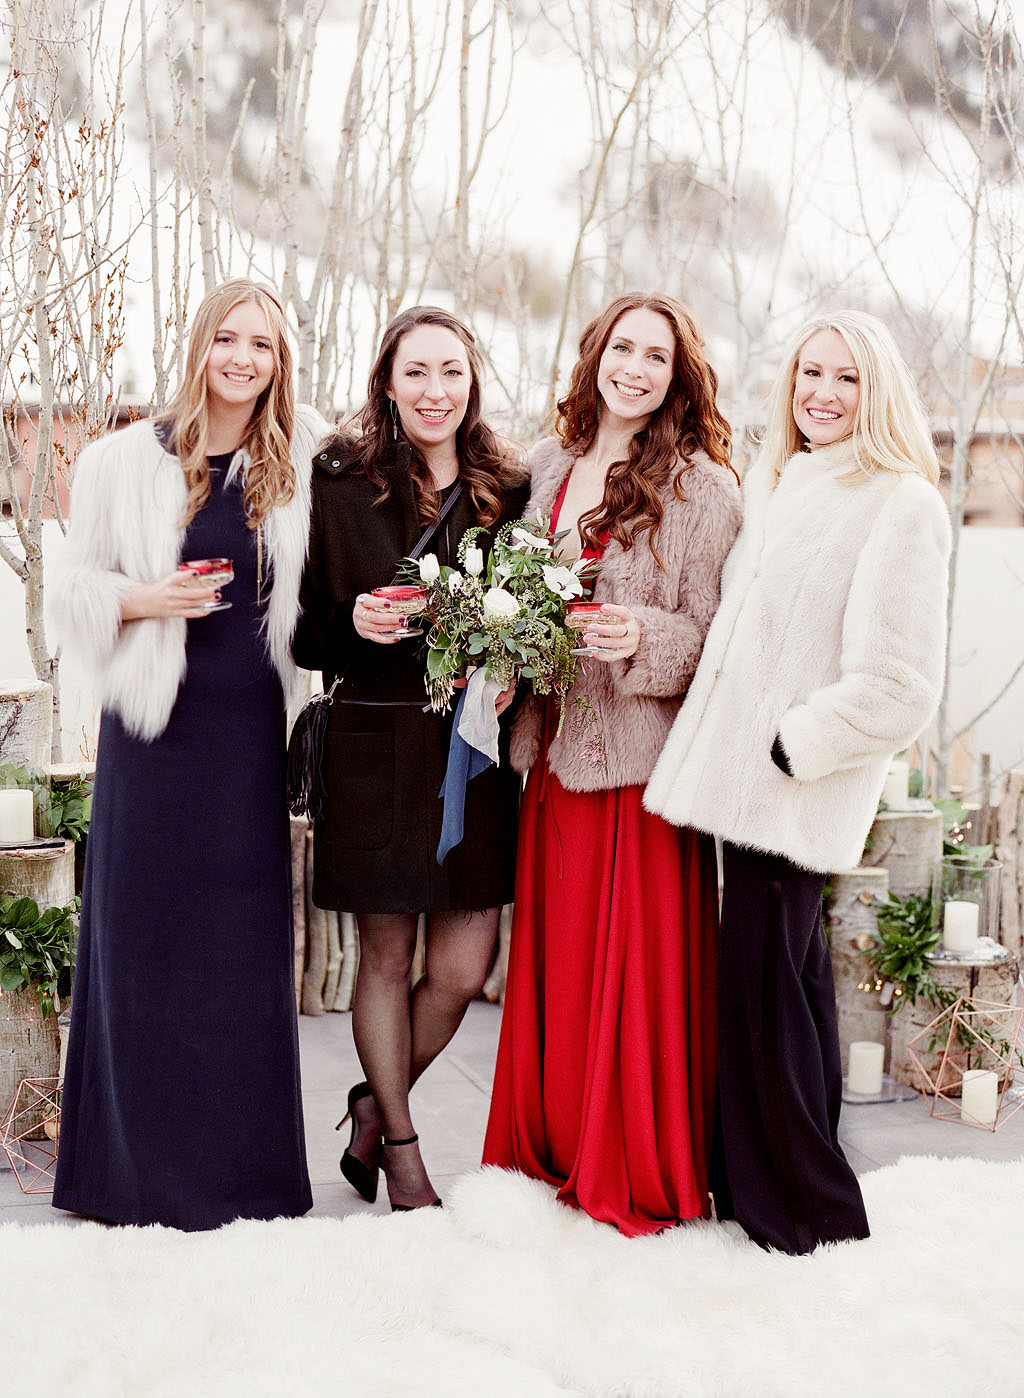 For the Guests: What to Wear to a Winter Wedding